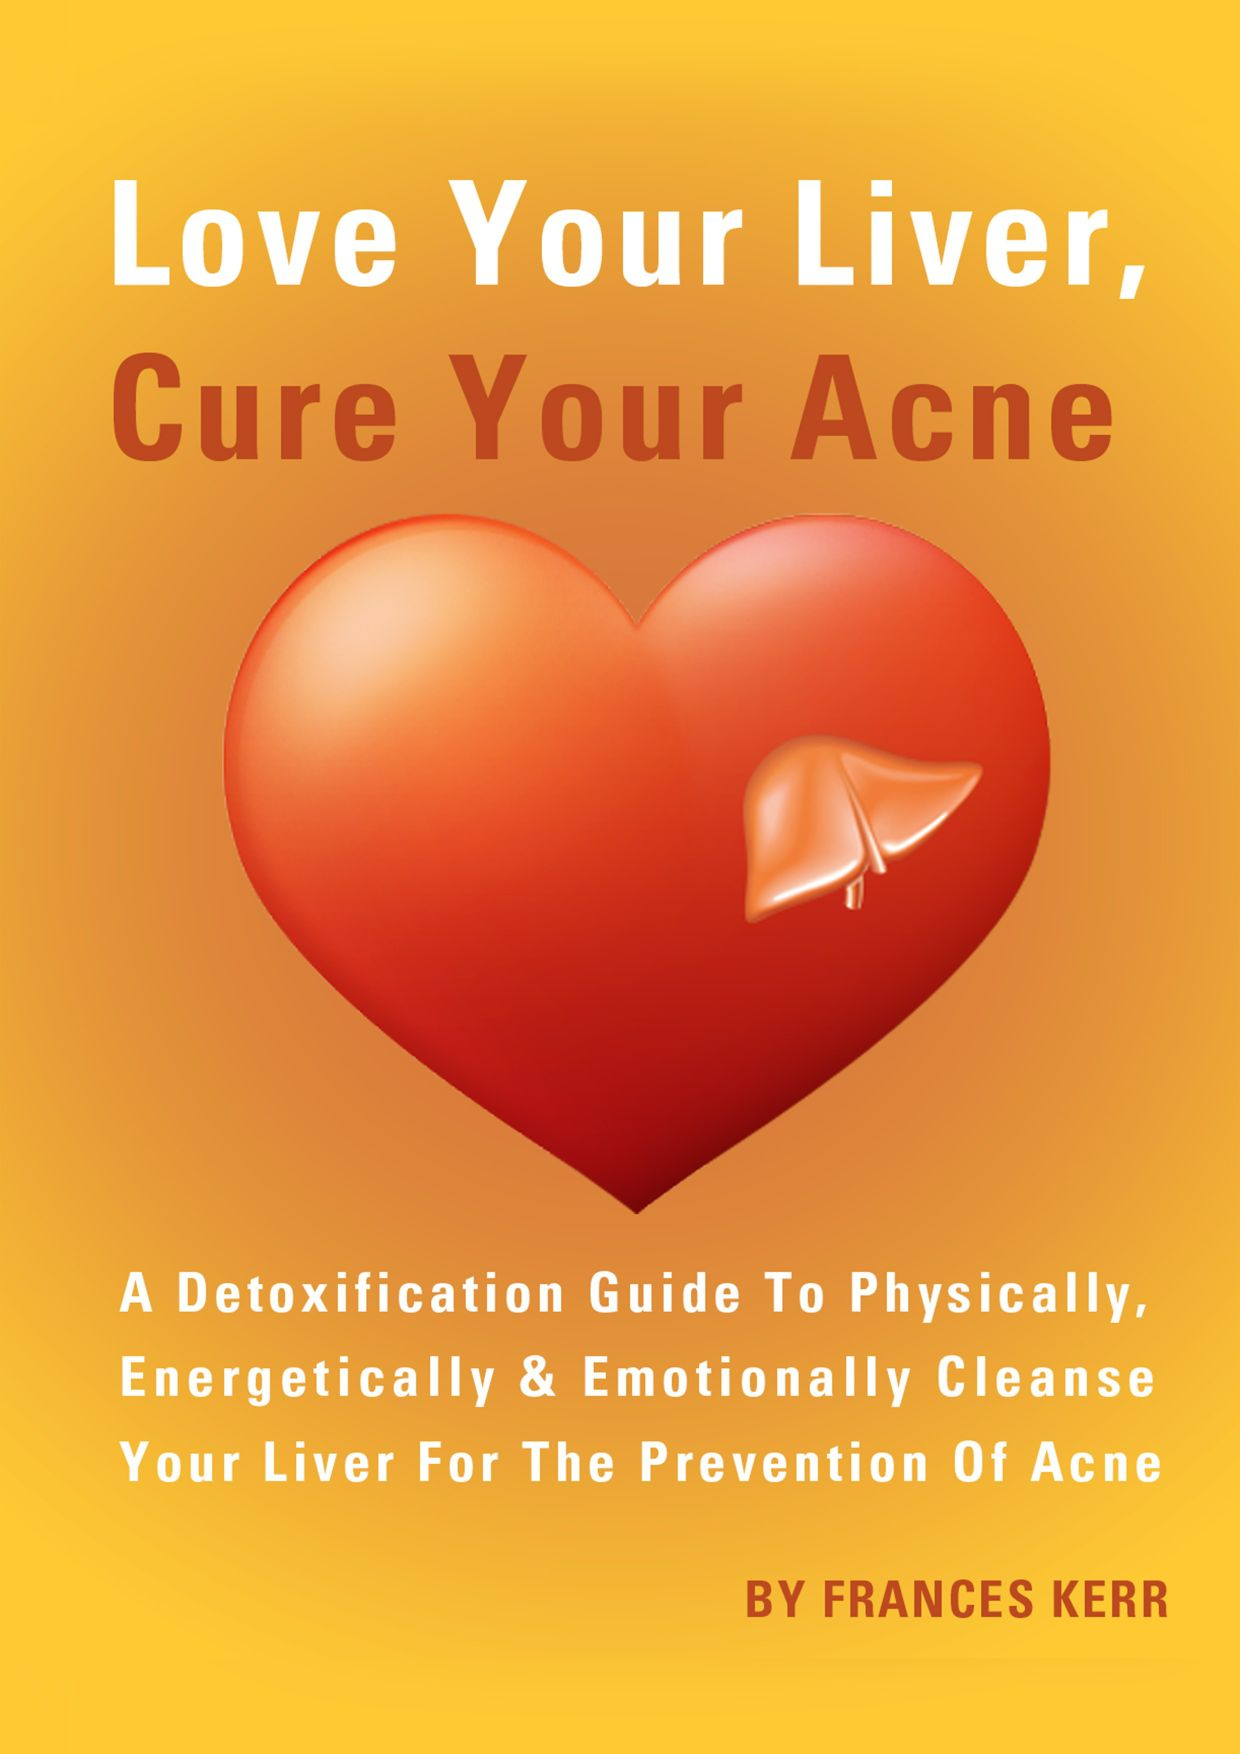 Love Your Liver, Cure Your Acne